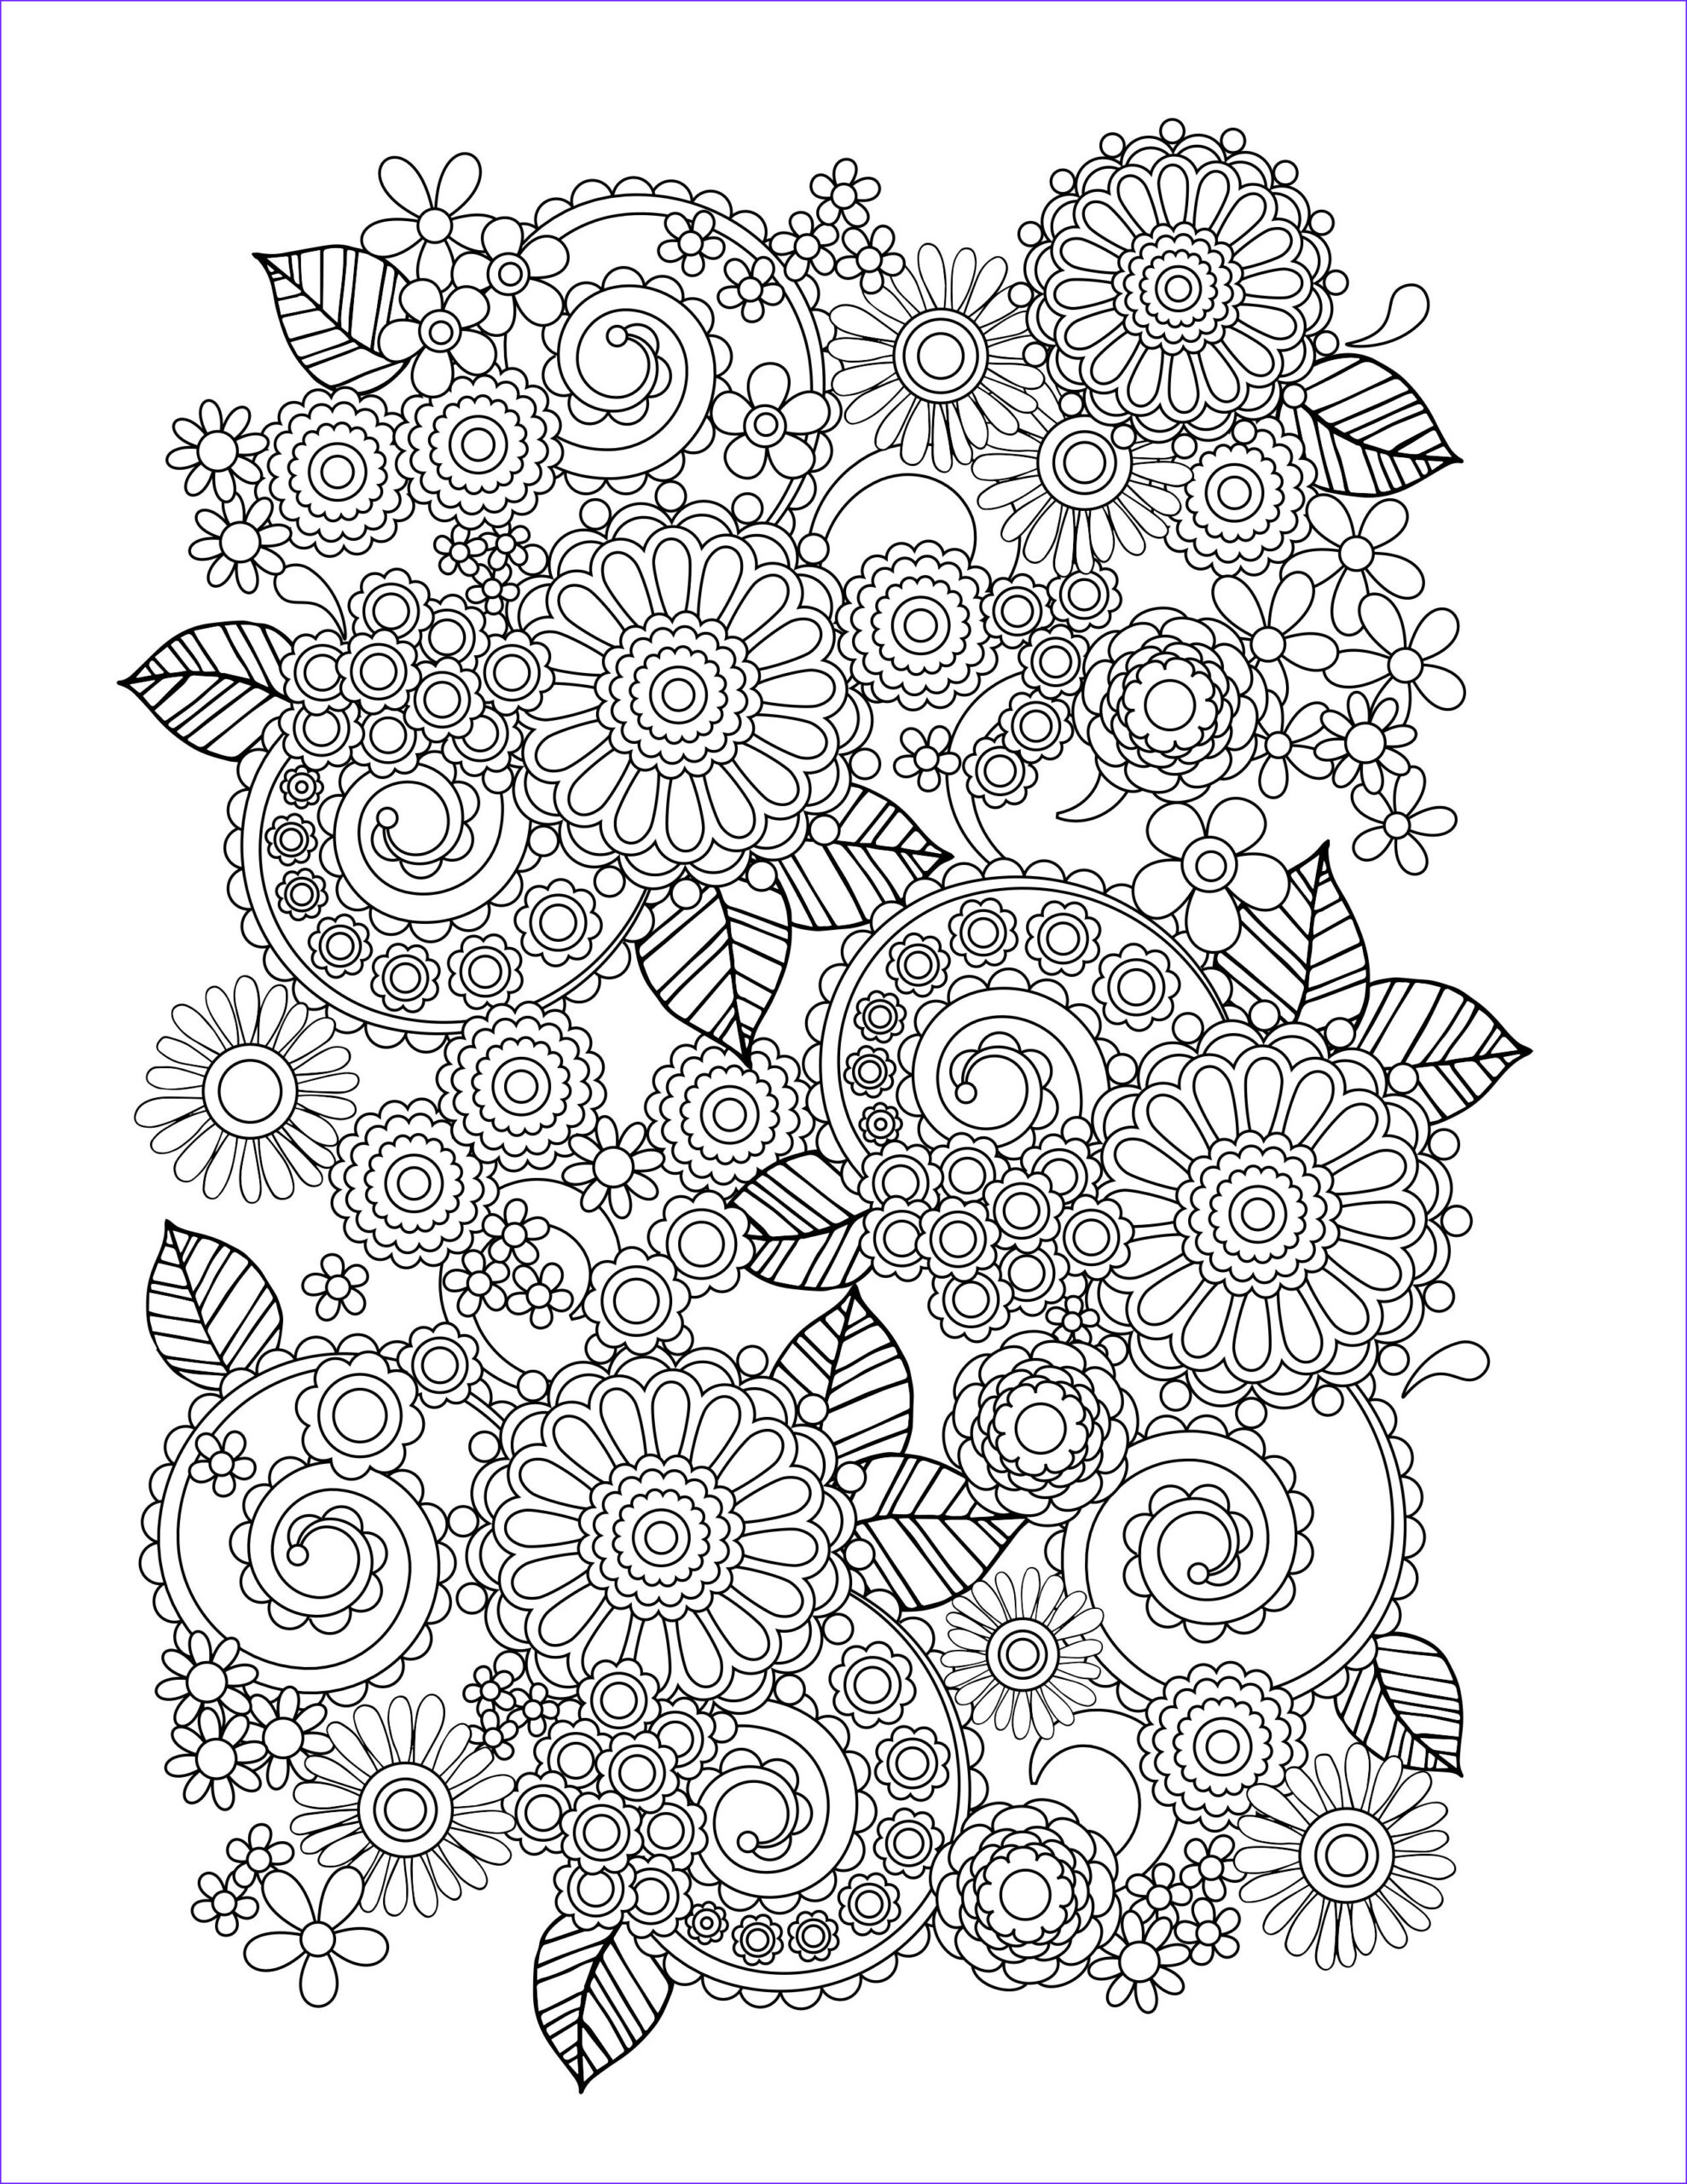 Coloring Sheets For Adults Elegant Stock Flower Coloring Pages For Adults Best Coloring Pages For